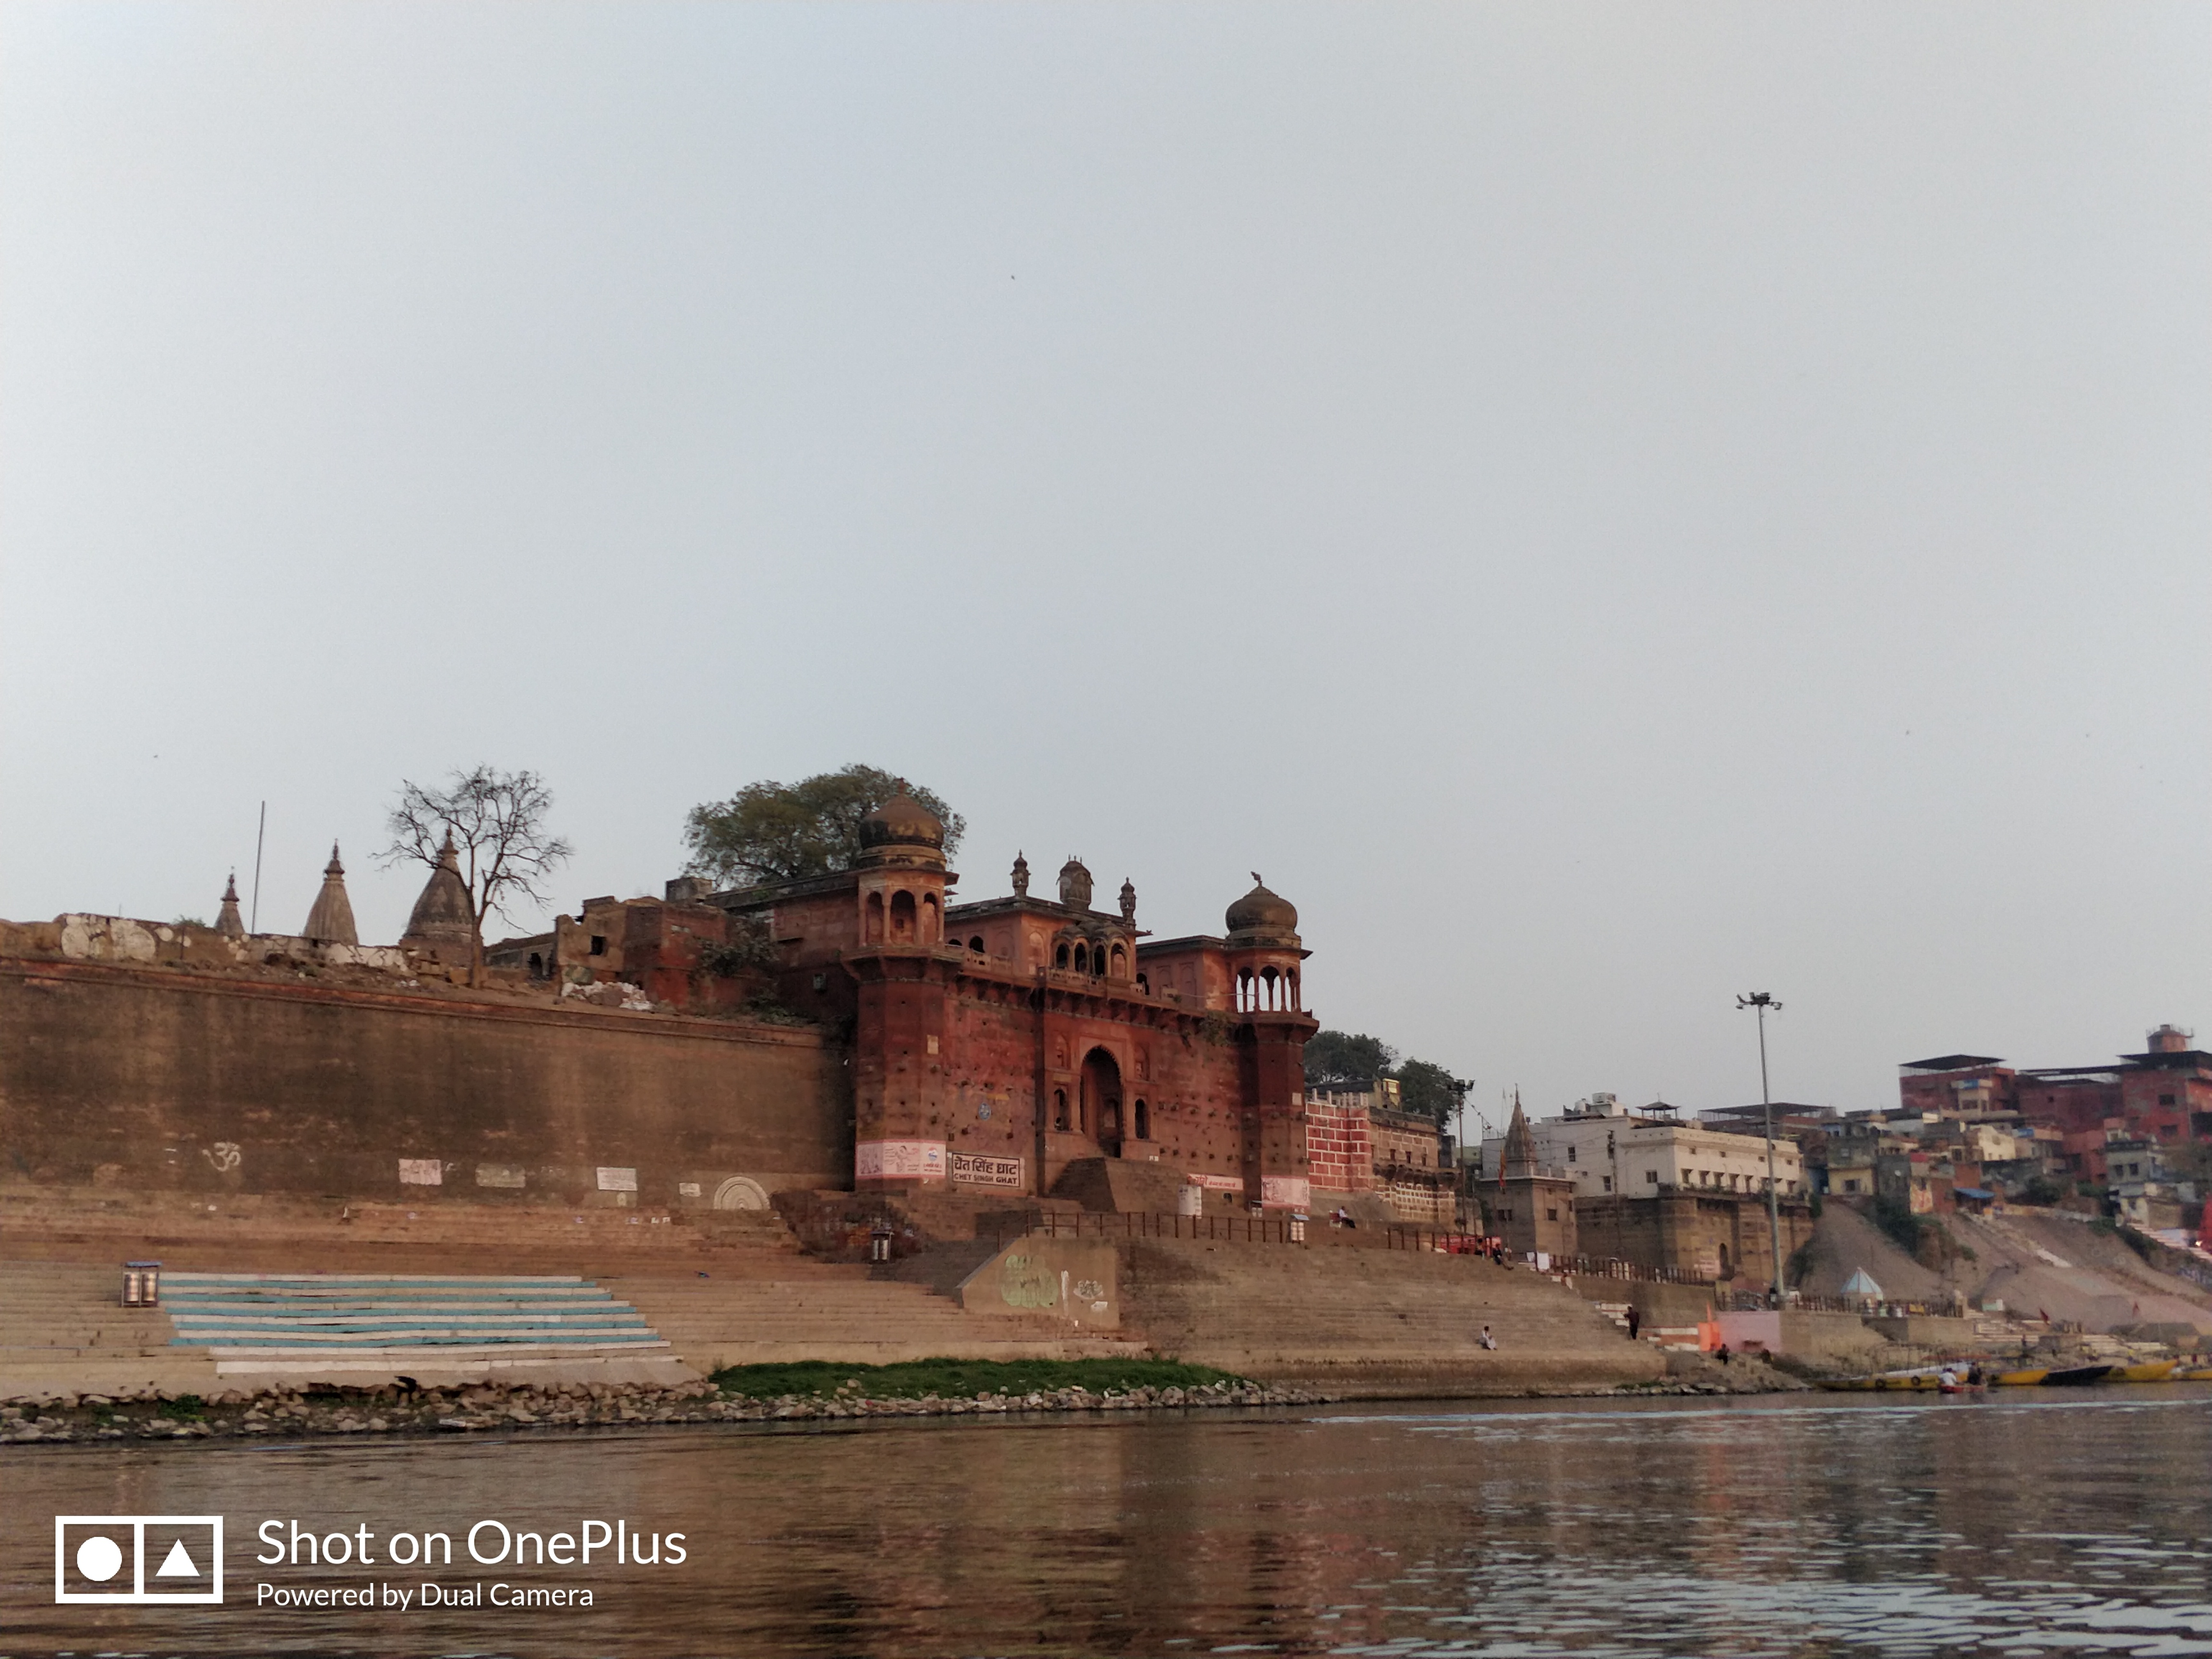 A shot at one of the ghats early morning